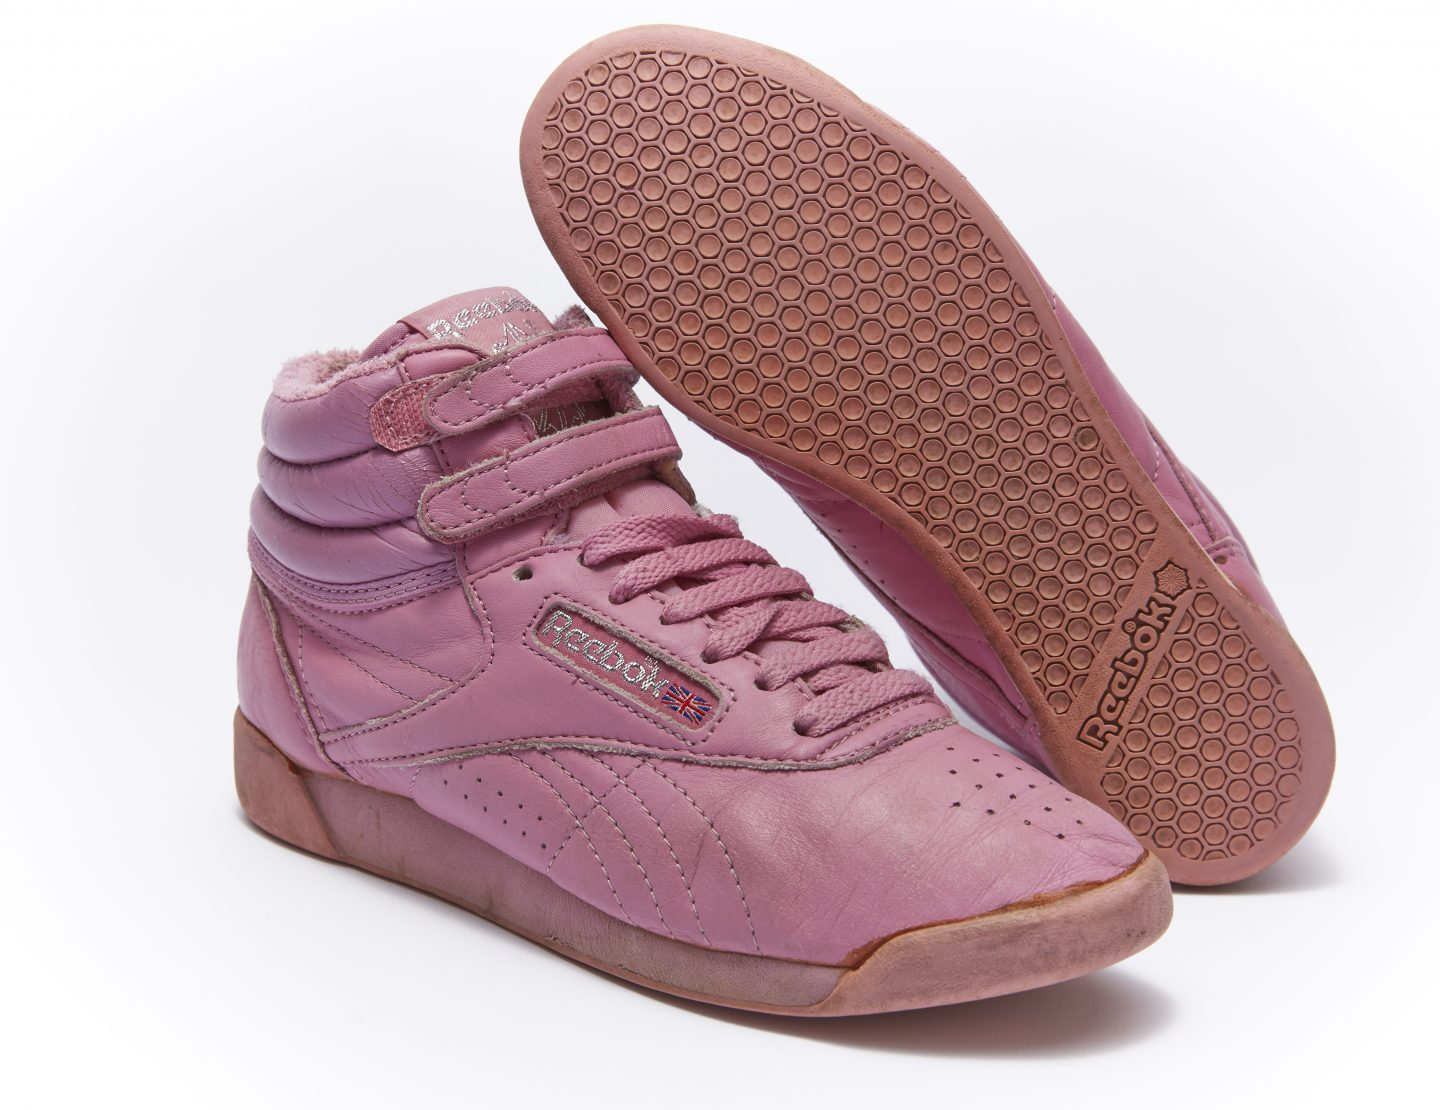 Reebok Classic Leather pink joe foster interview